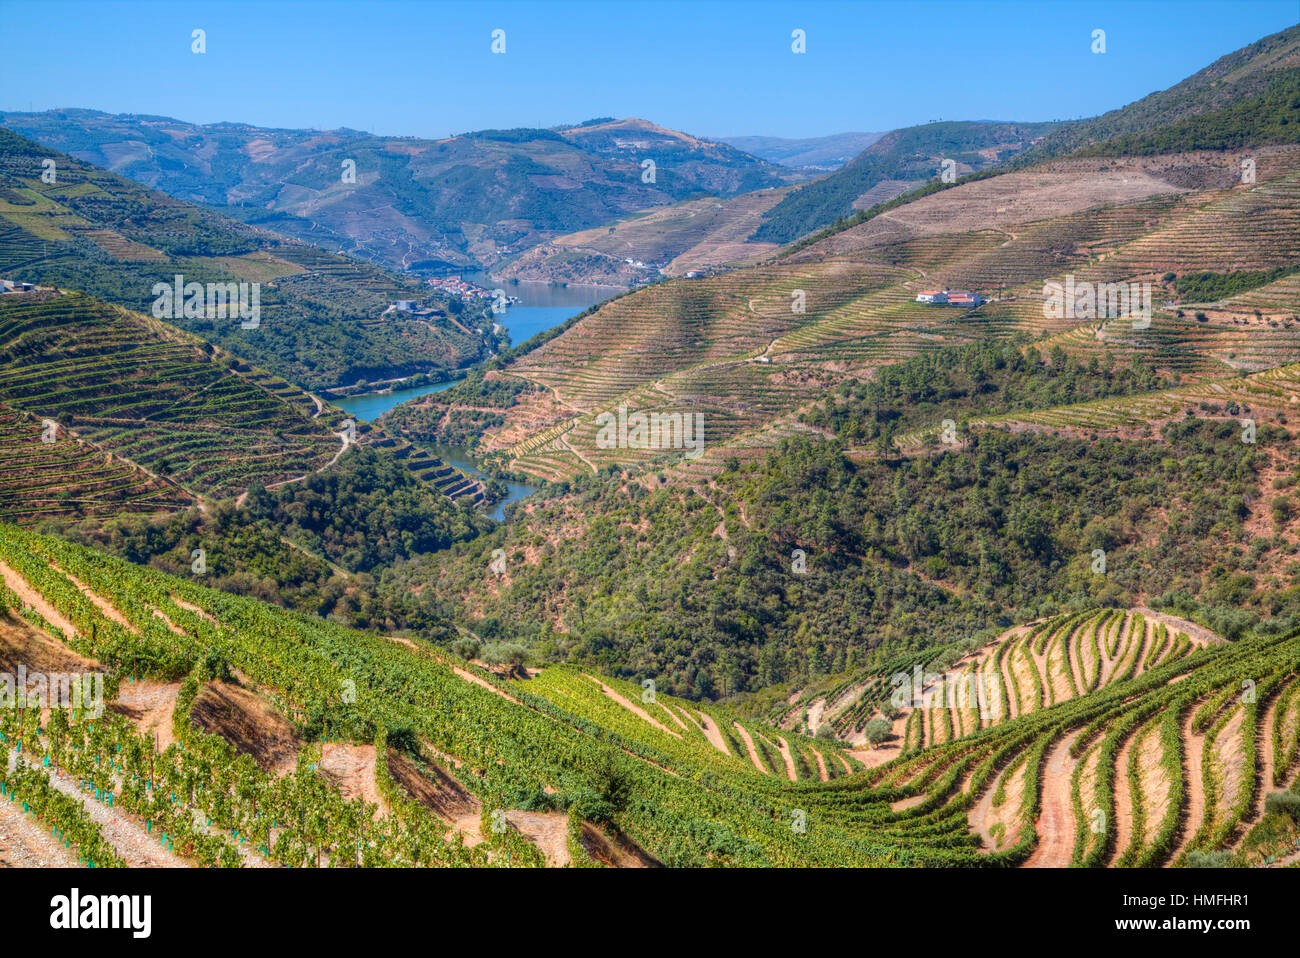 Vineyards and the Douro River, Alto Douro Wine Valley, Portugal - Stock Image